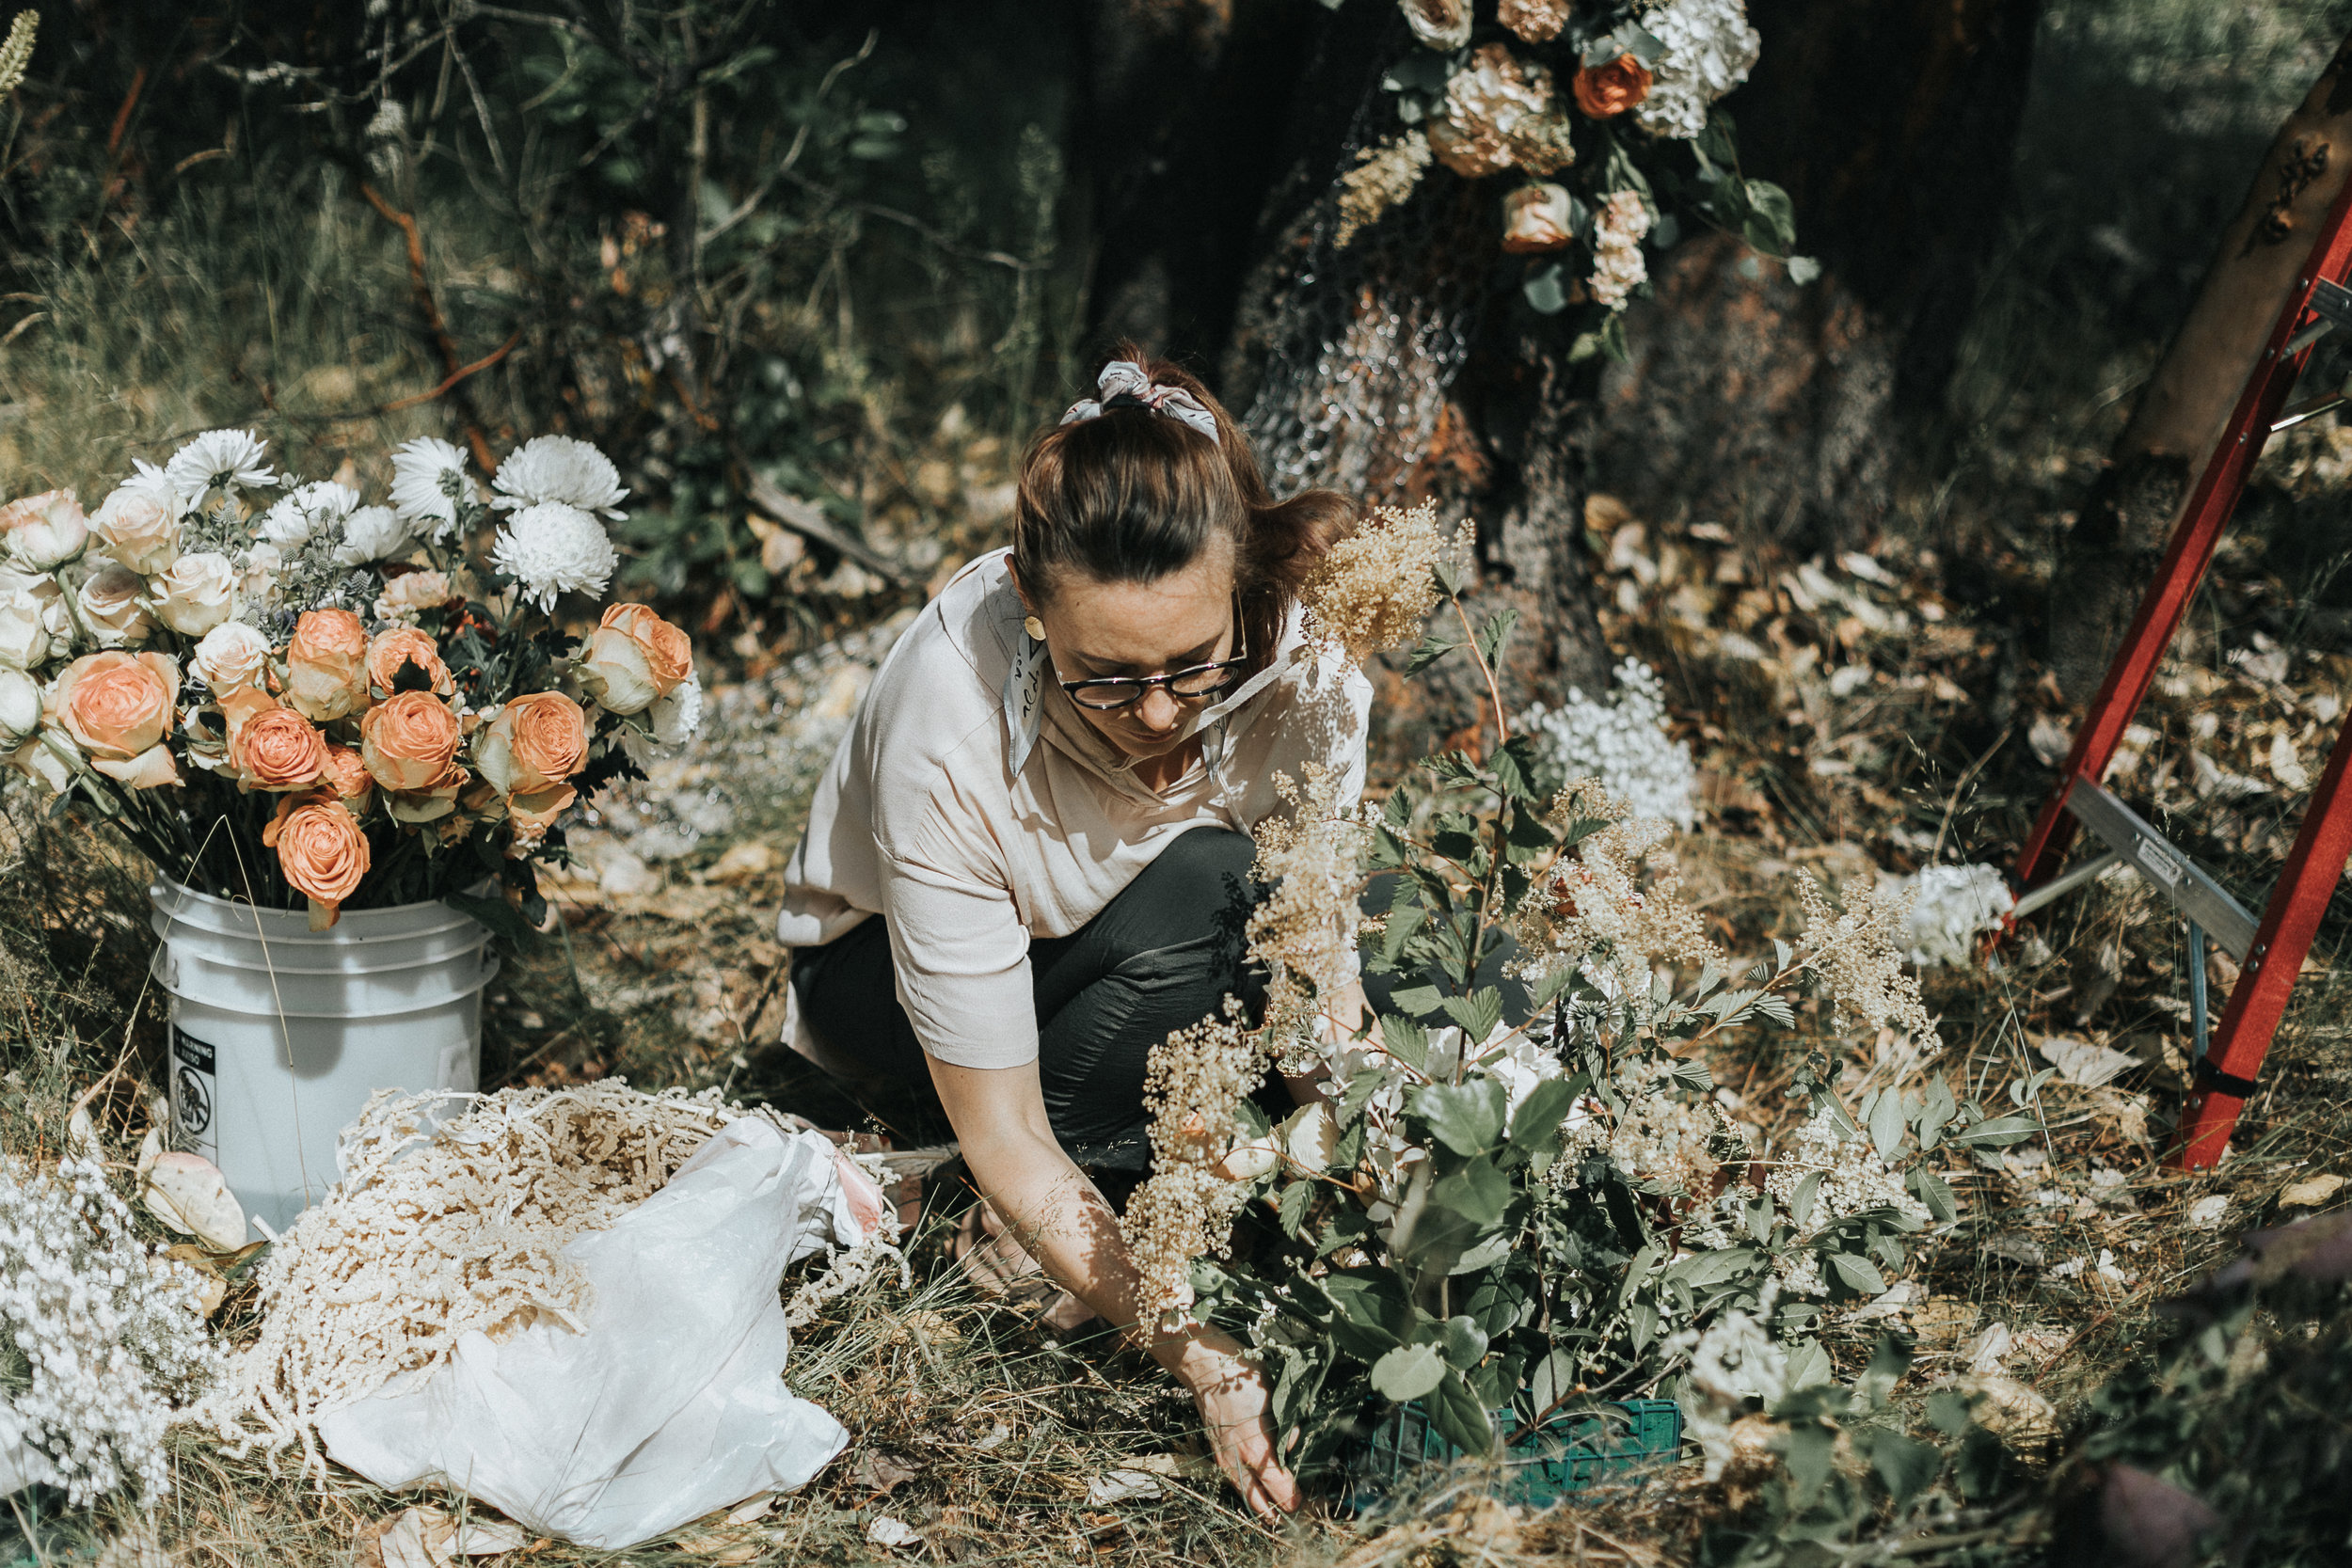 discoveryparkelopement - runaway with me elopements - seattle elopement-10.jpg